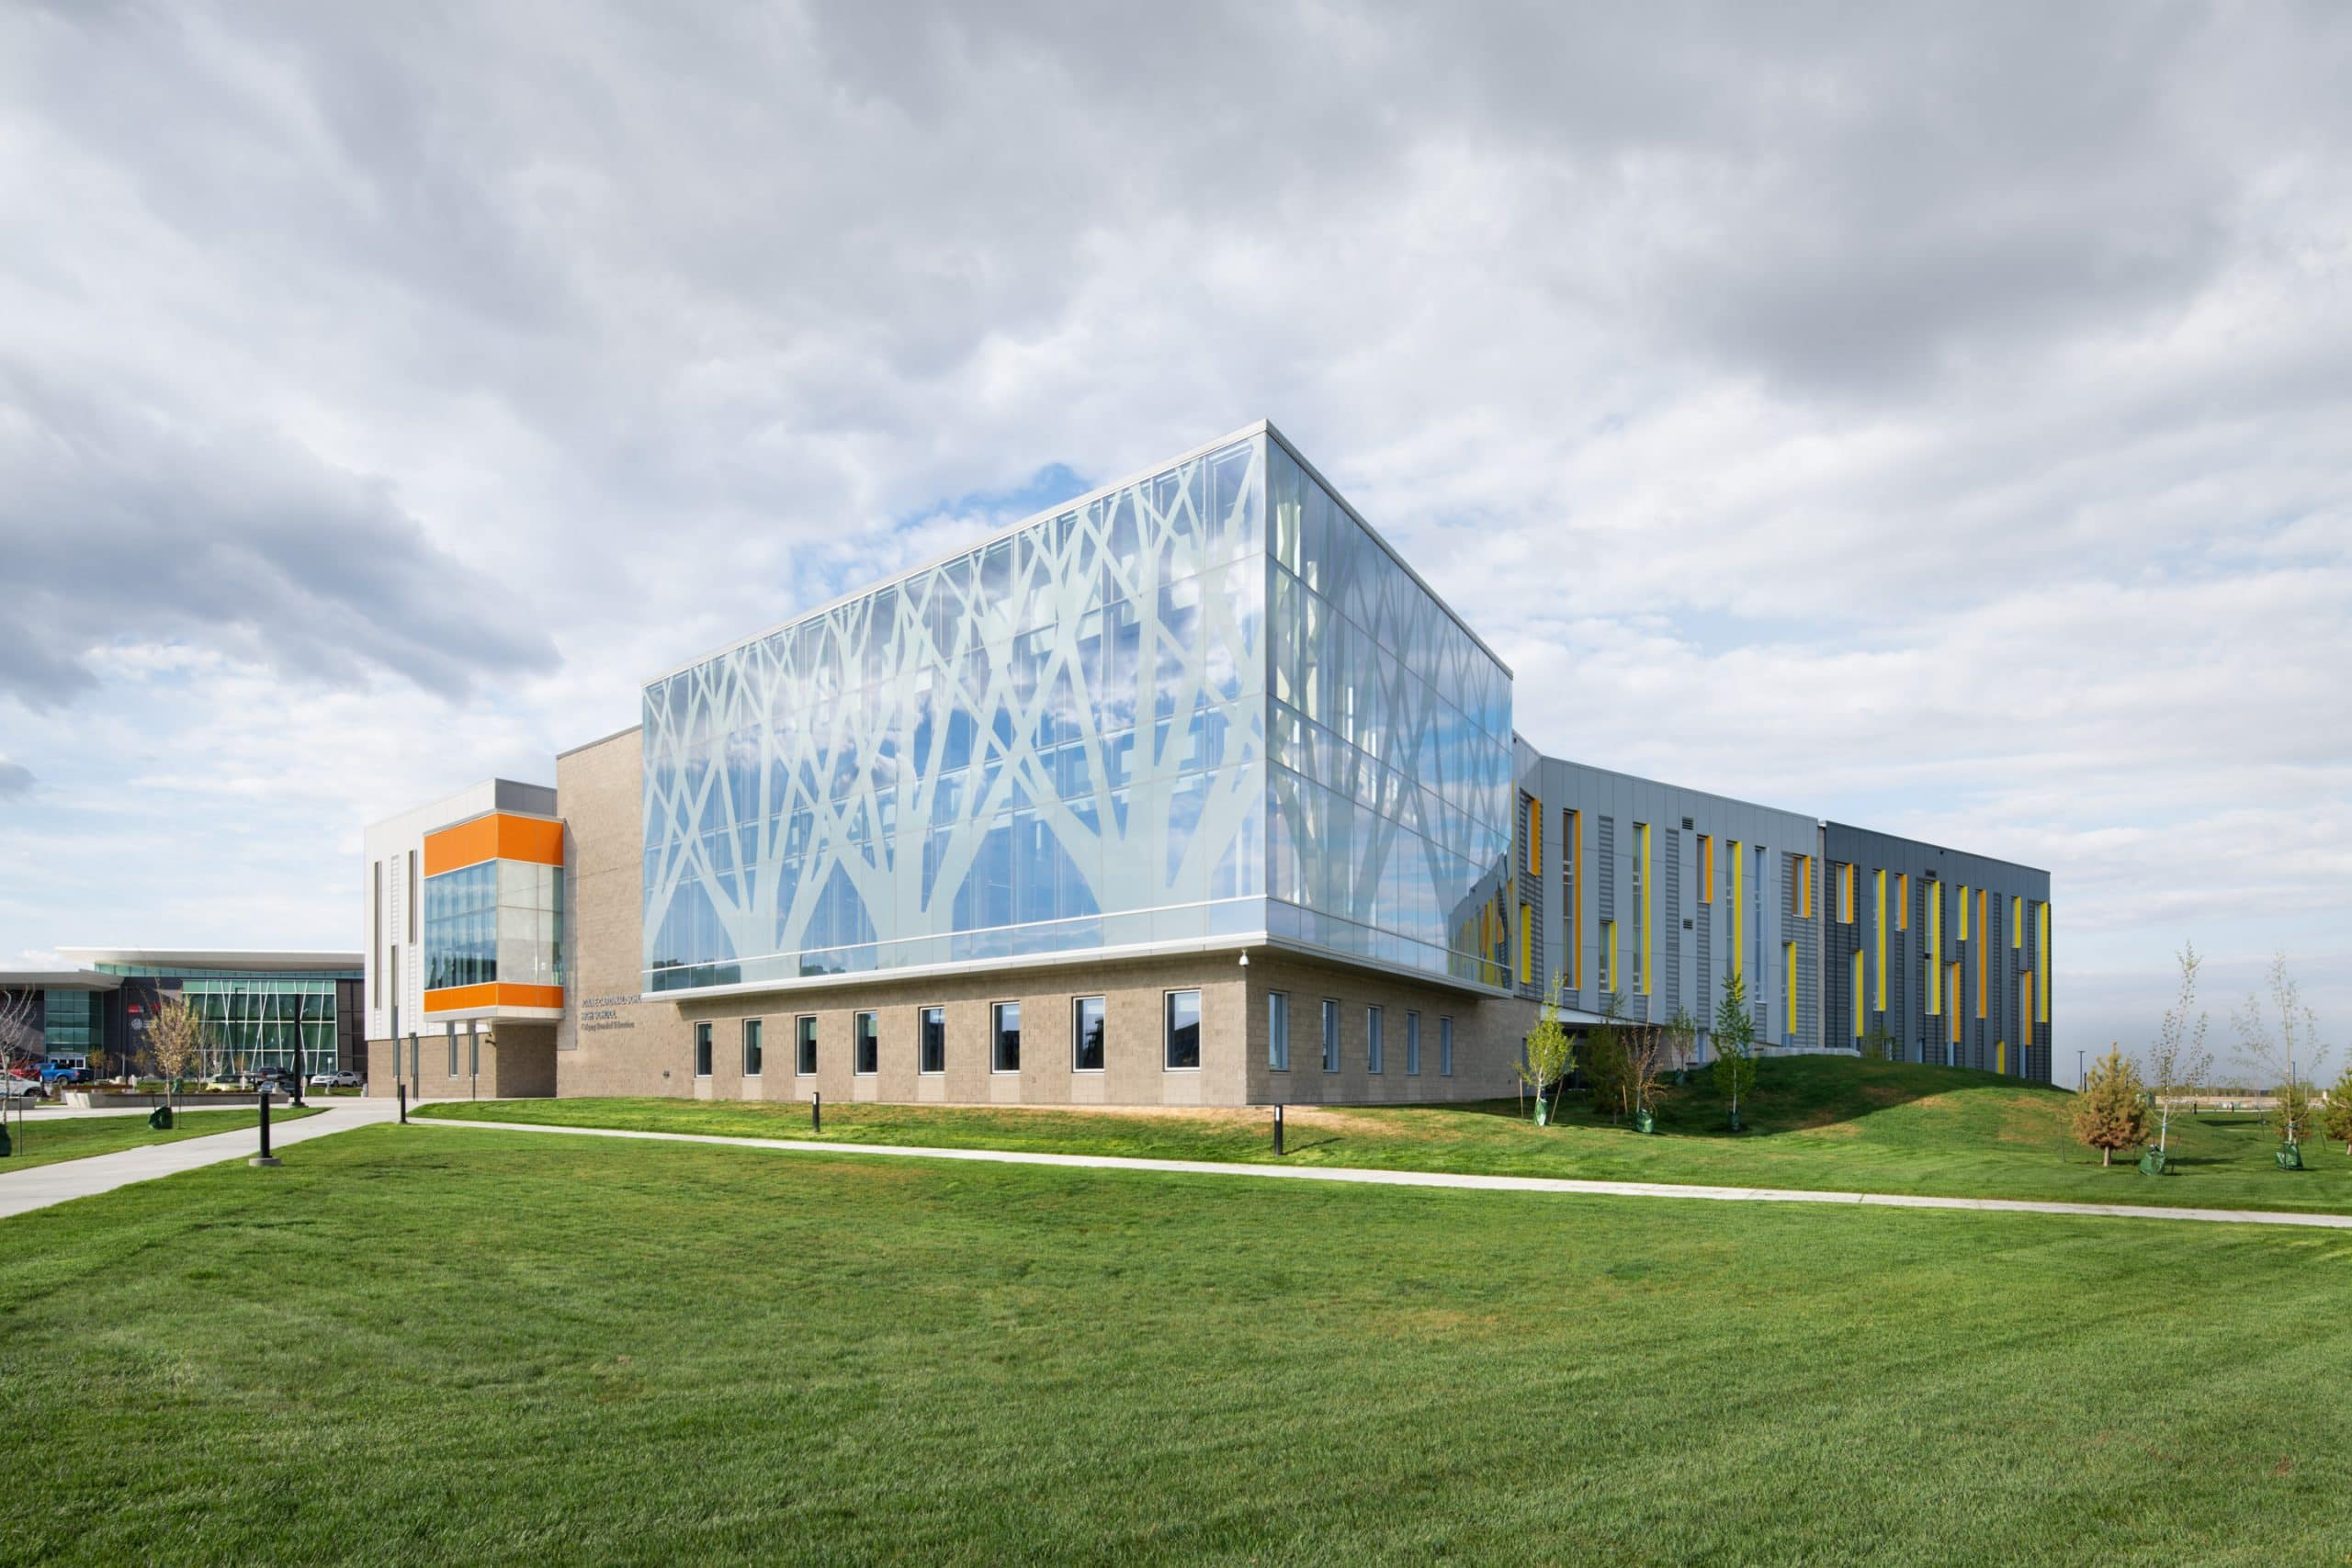 Architectural photography of the Cardinal Schubert High School in SE Calgary.